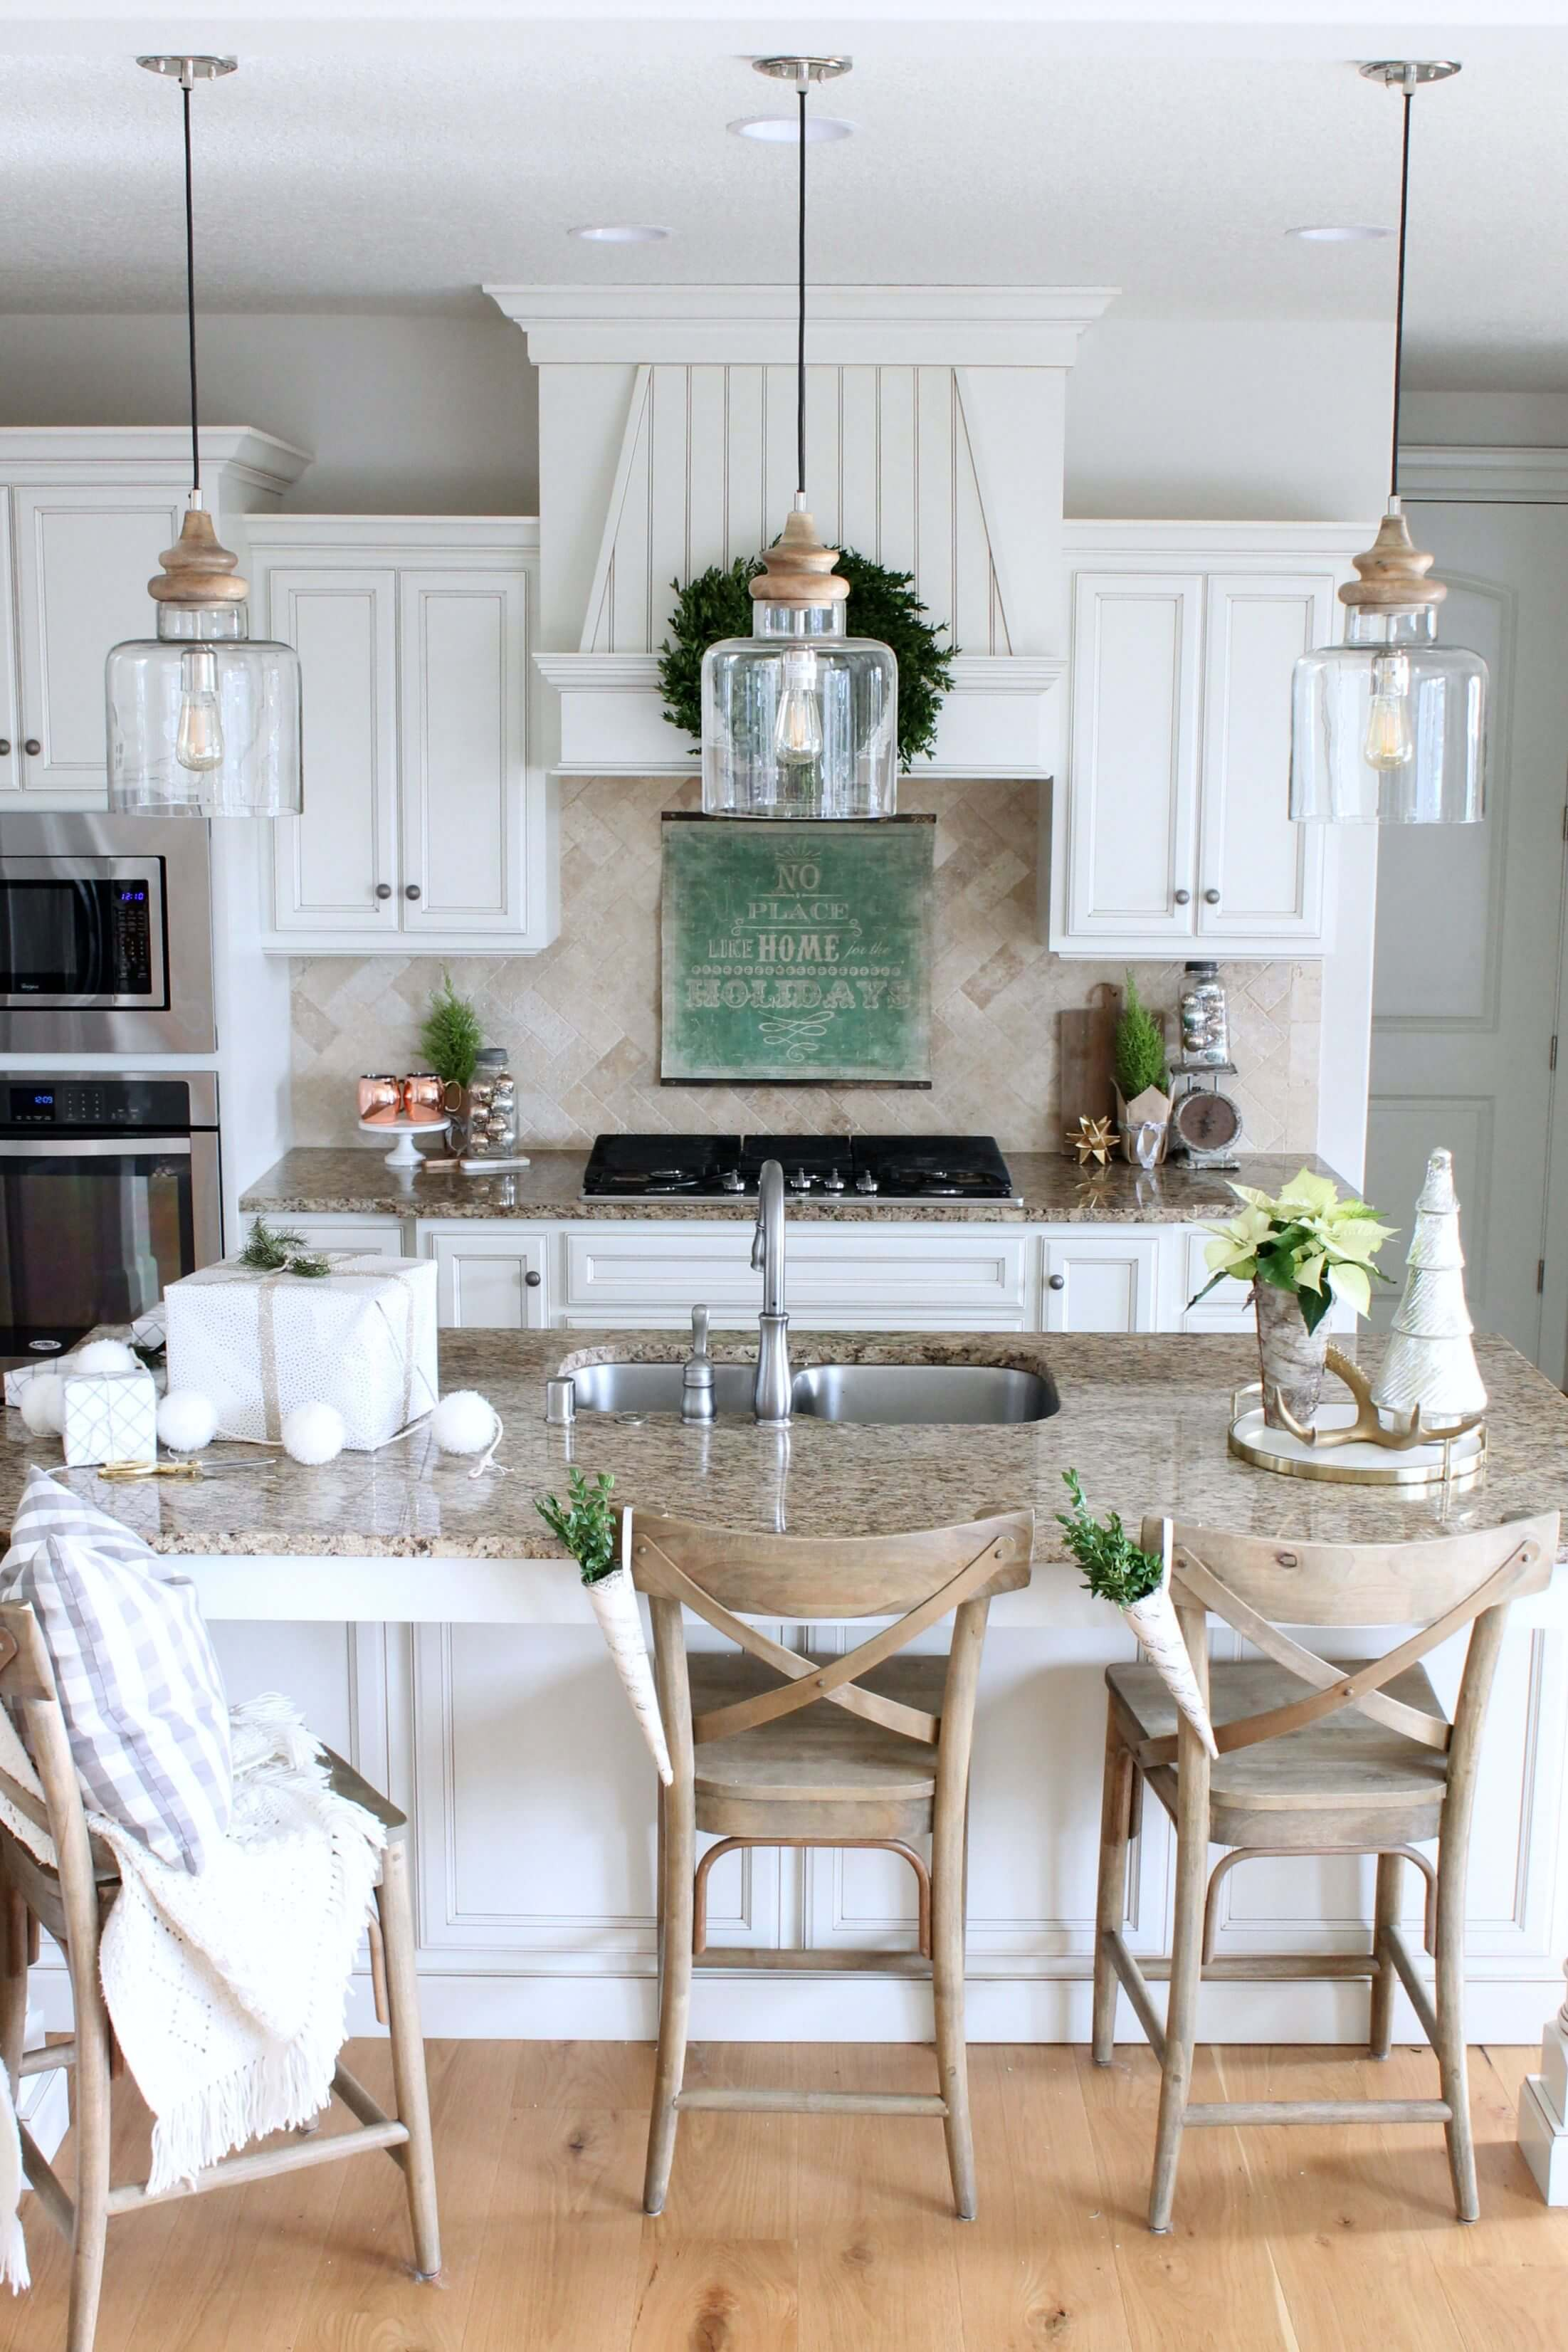 Classic White Cabinets with Beveled Edges